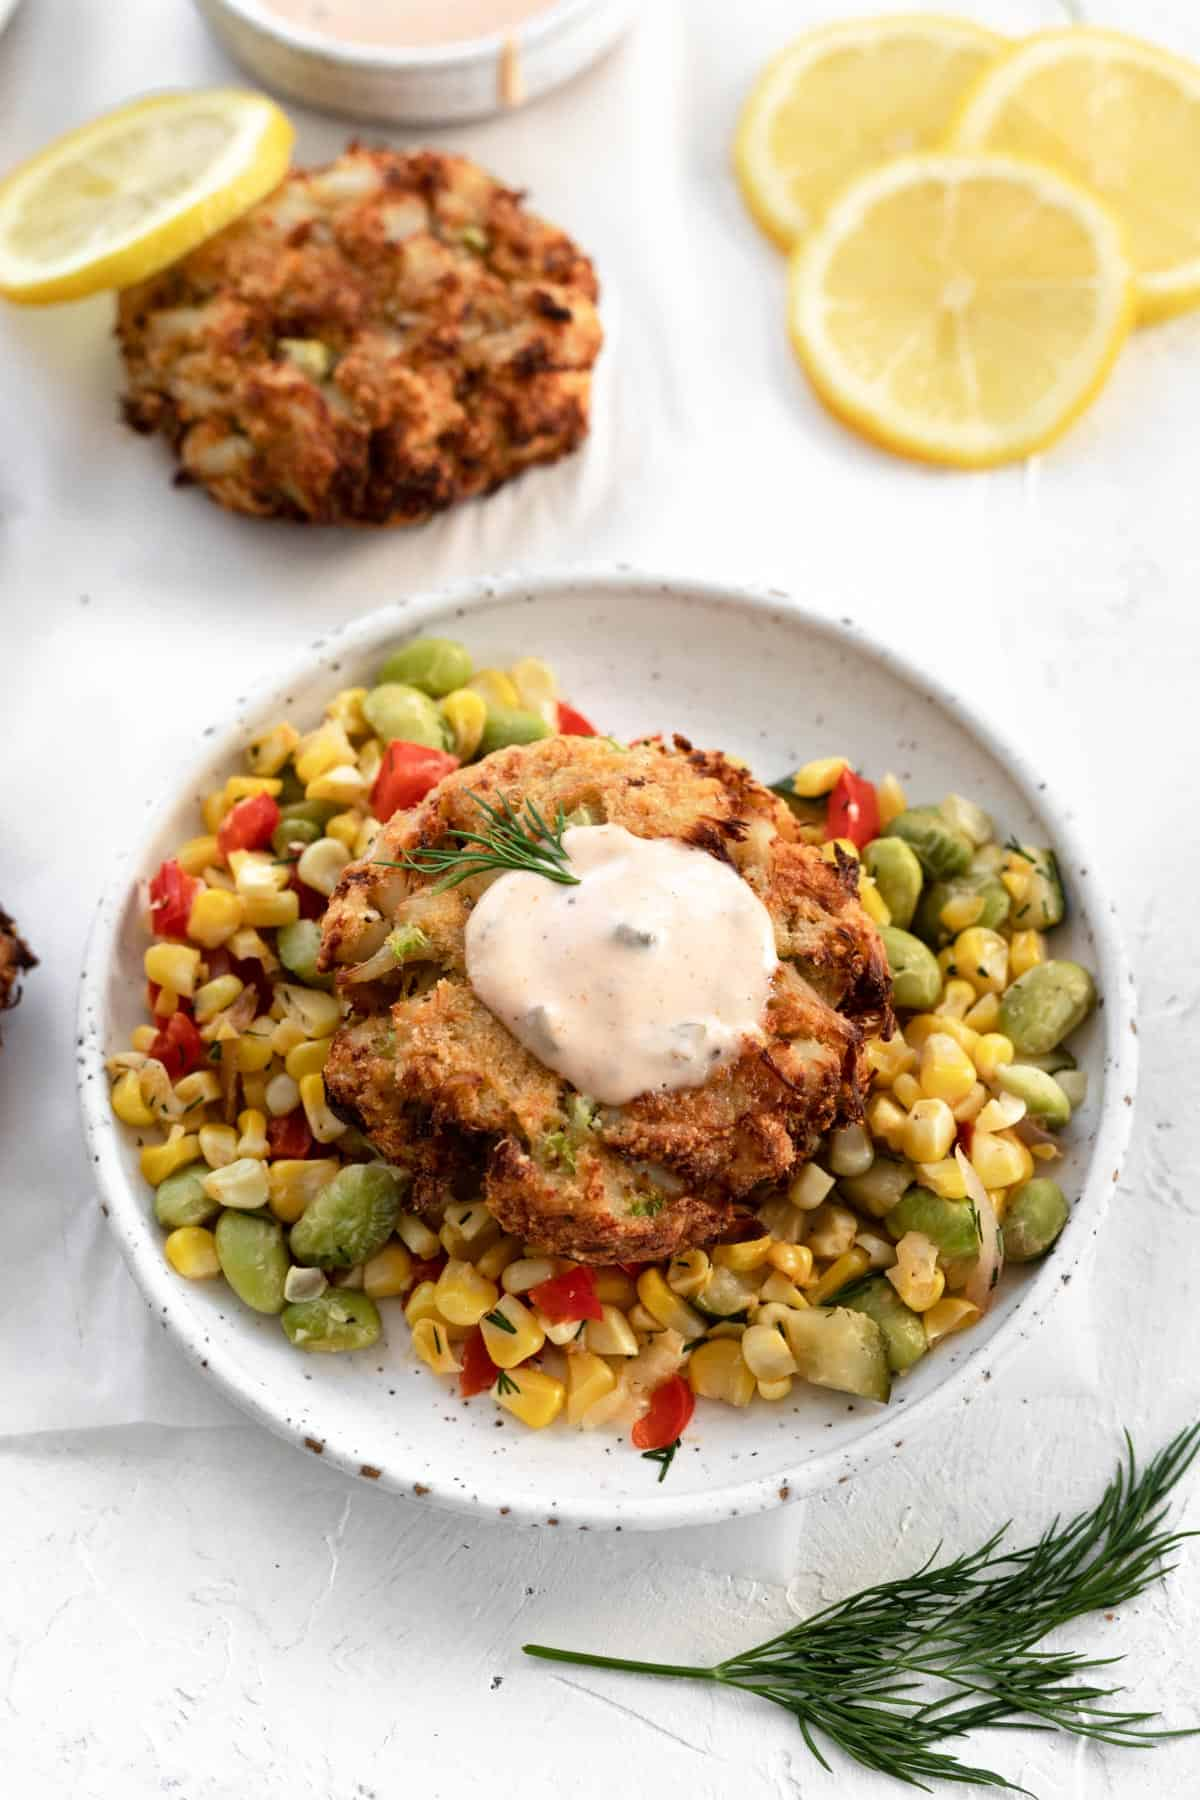 A crab cake on top of corn succotash on a white plate with a dollop of homemade remoulade sauce on top.